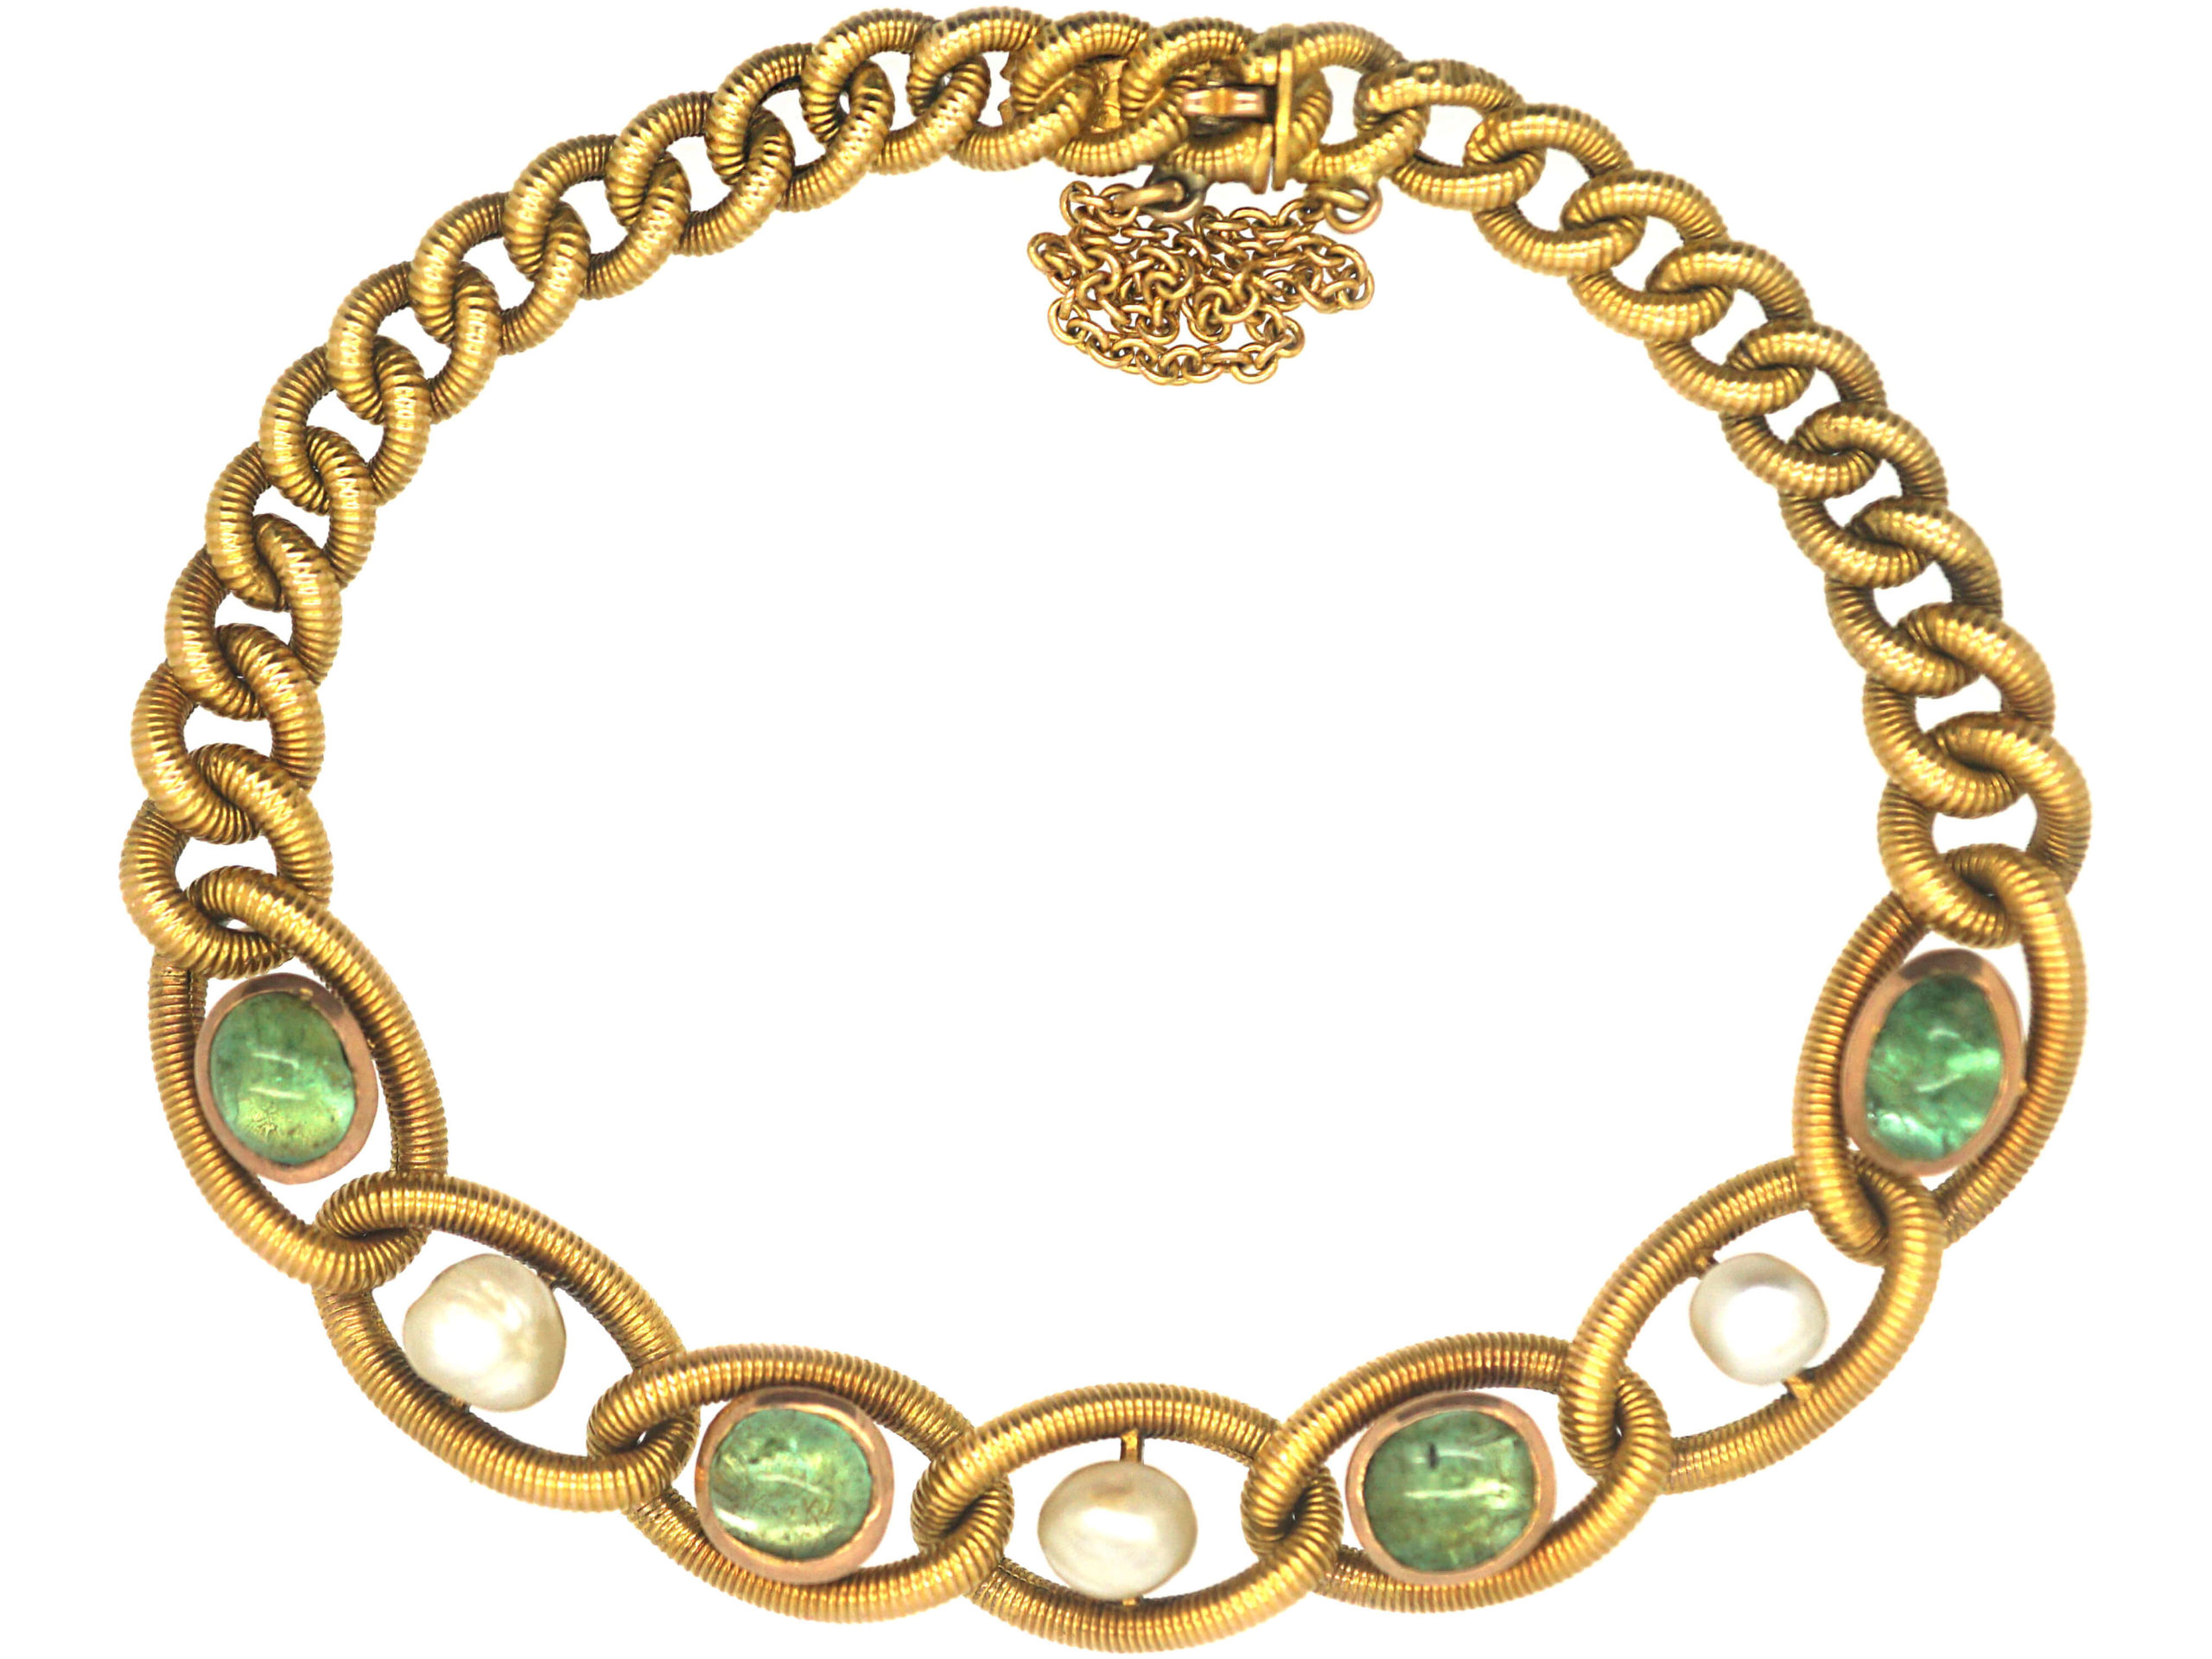 French 18ct Gold, Cabochon Emerald & Natural Pearl Bracelet